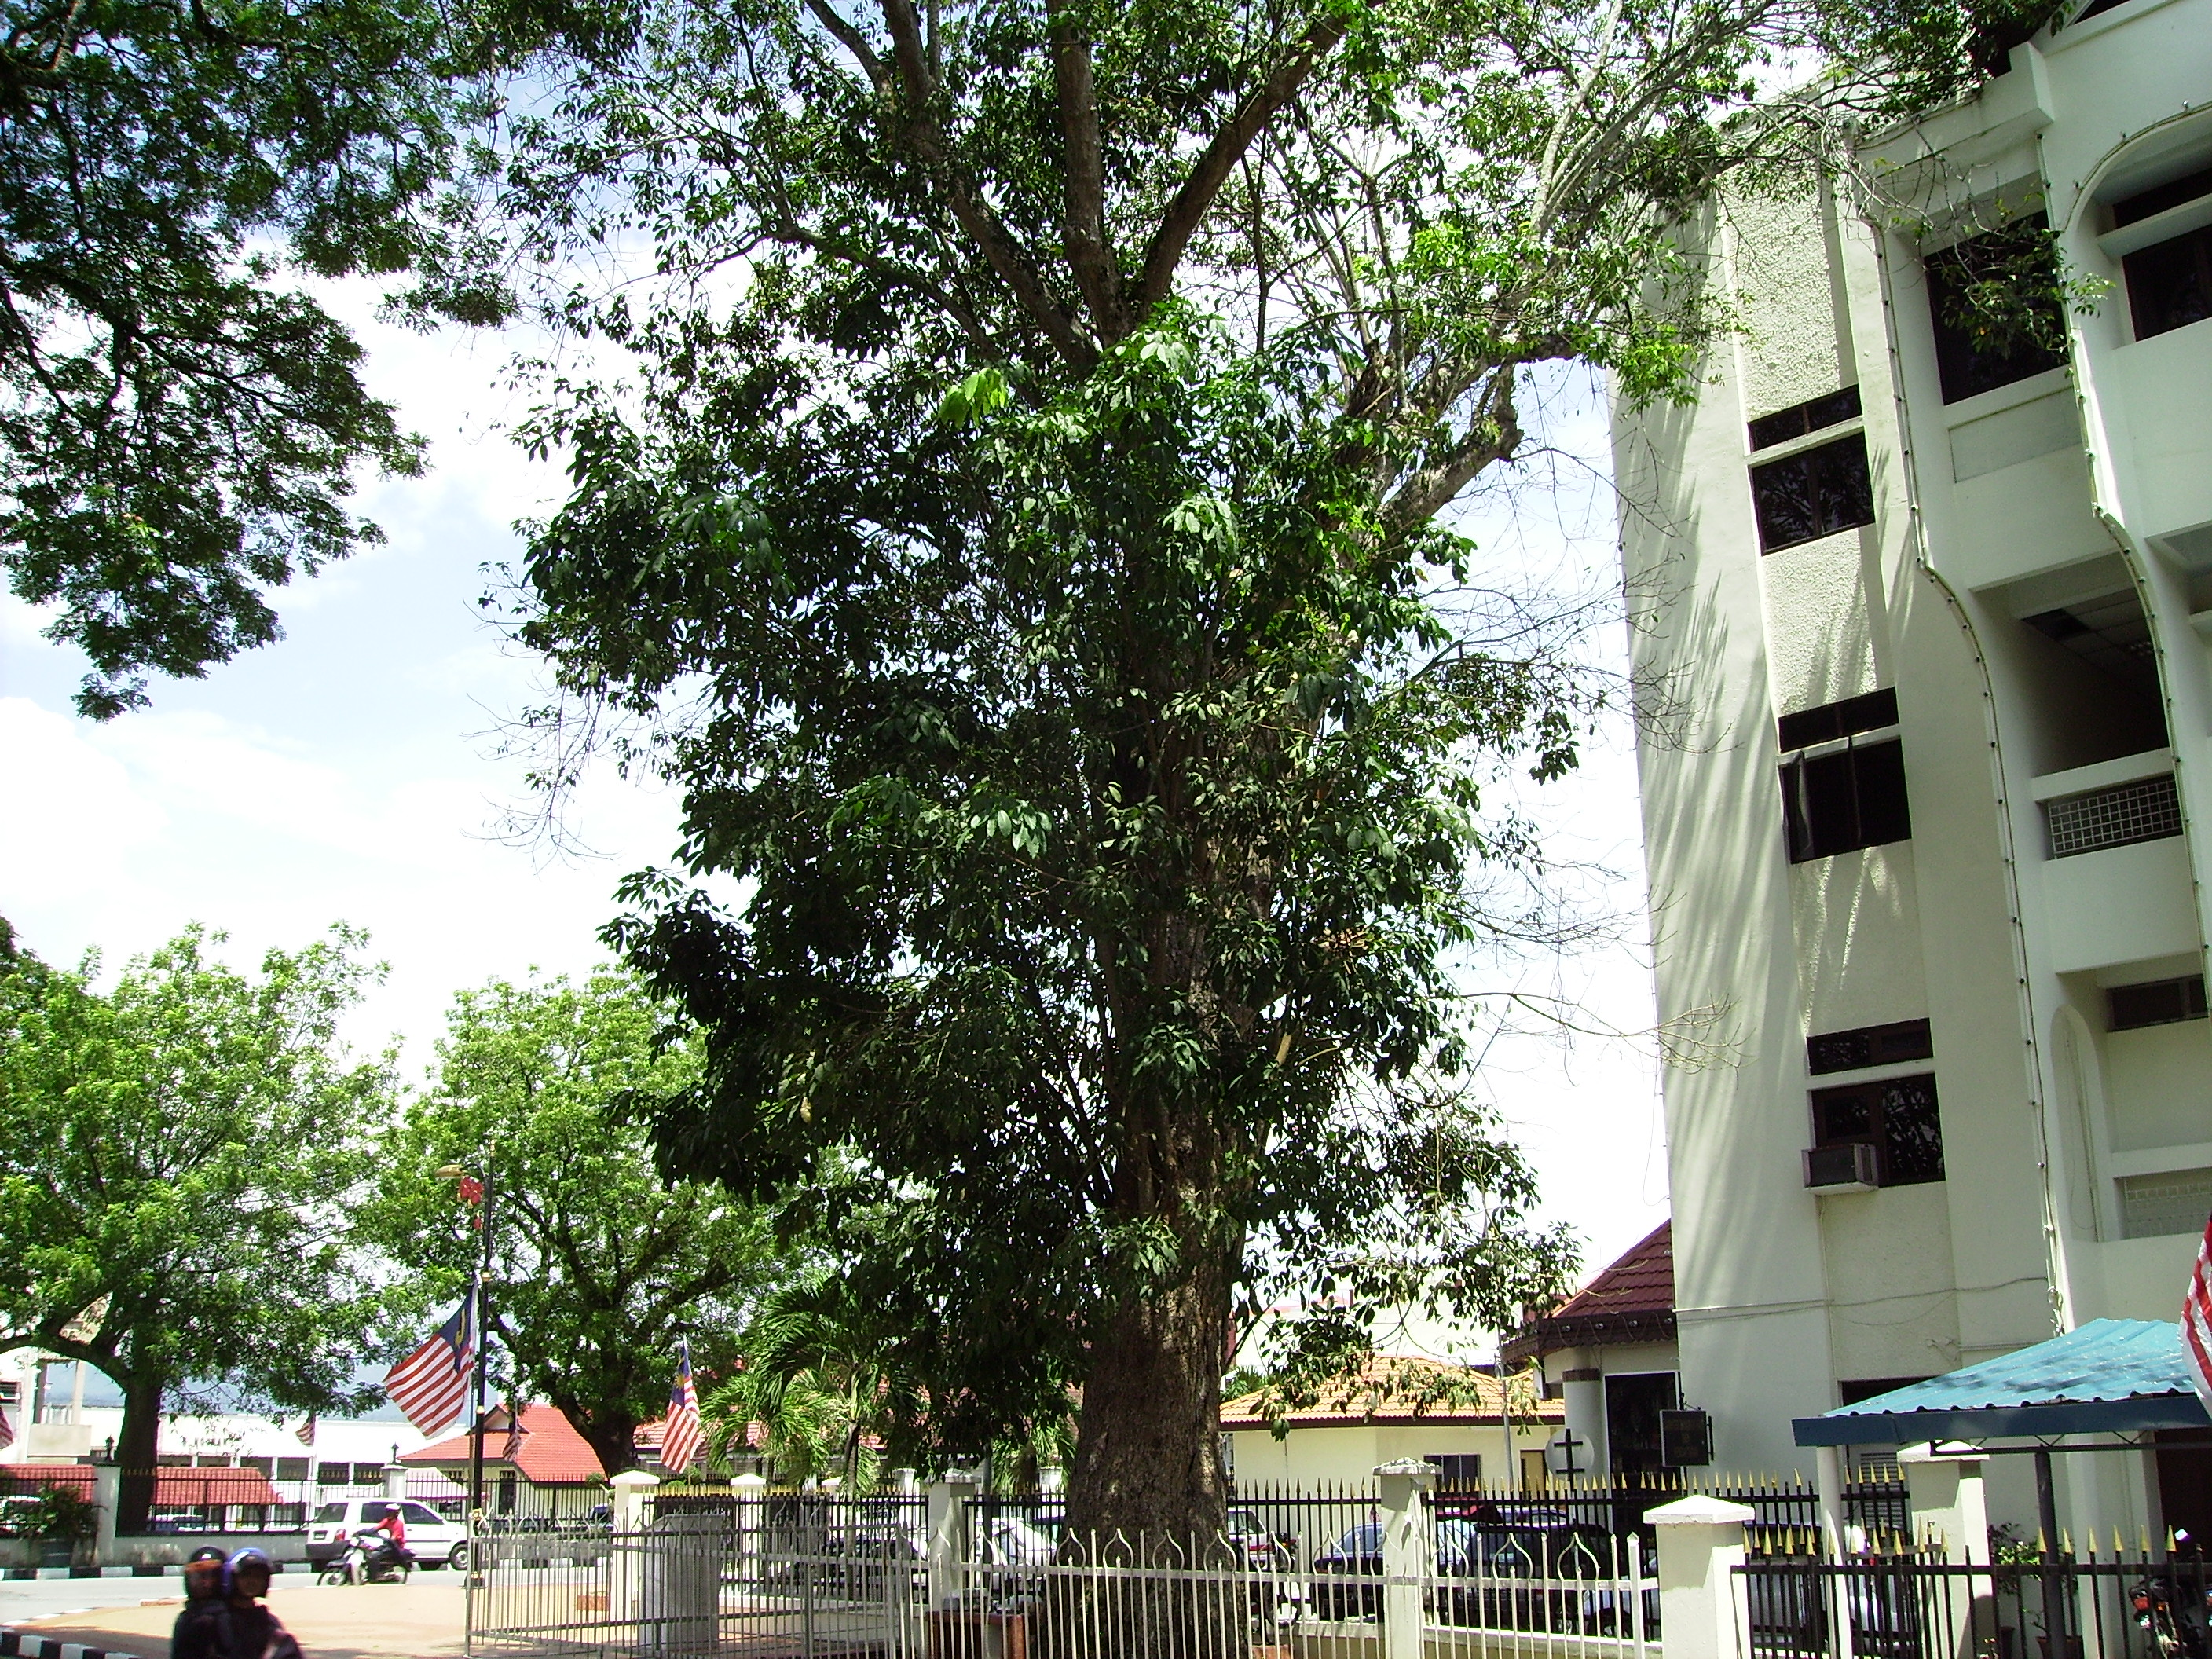 This rubber tree is said to be the first planted in Malaysia, and you can find it in Kuala Kangsar, Perak. Img from Mapio, which will tell you the exact location.